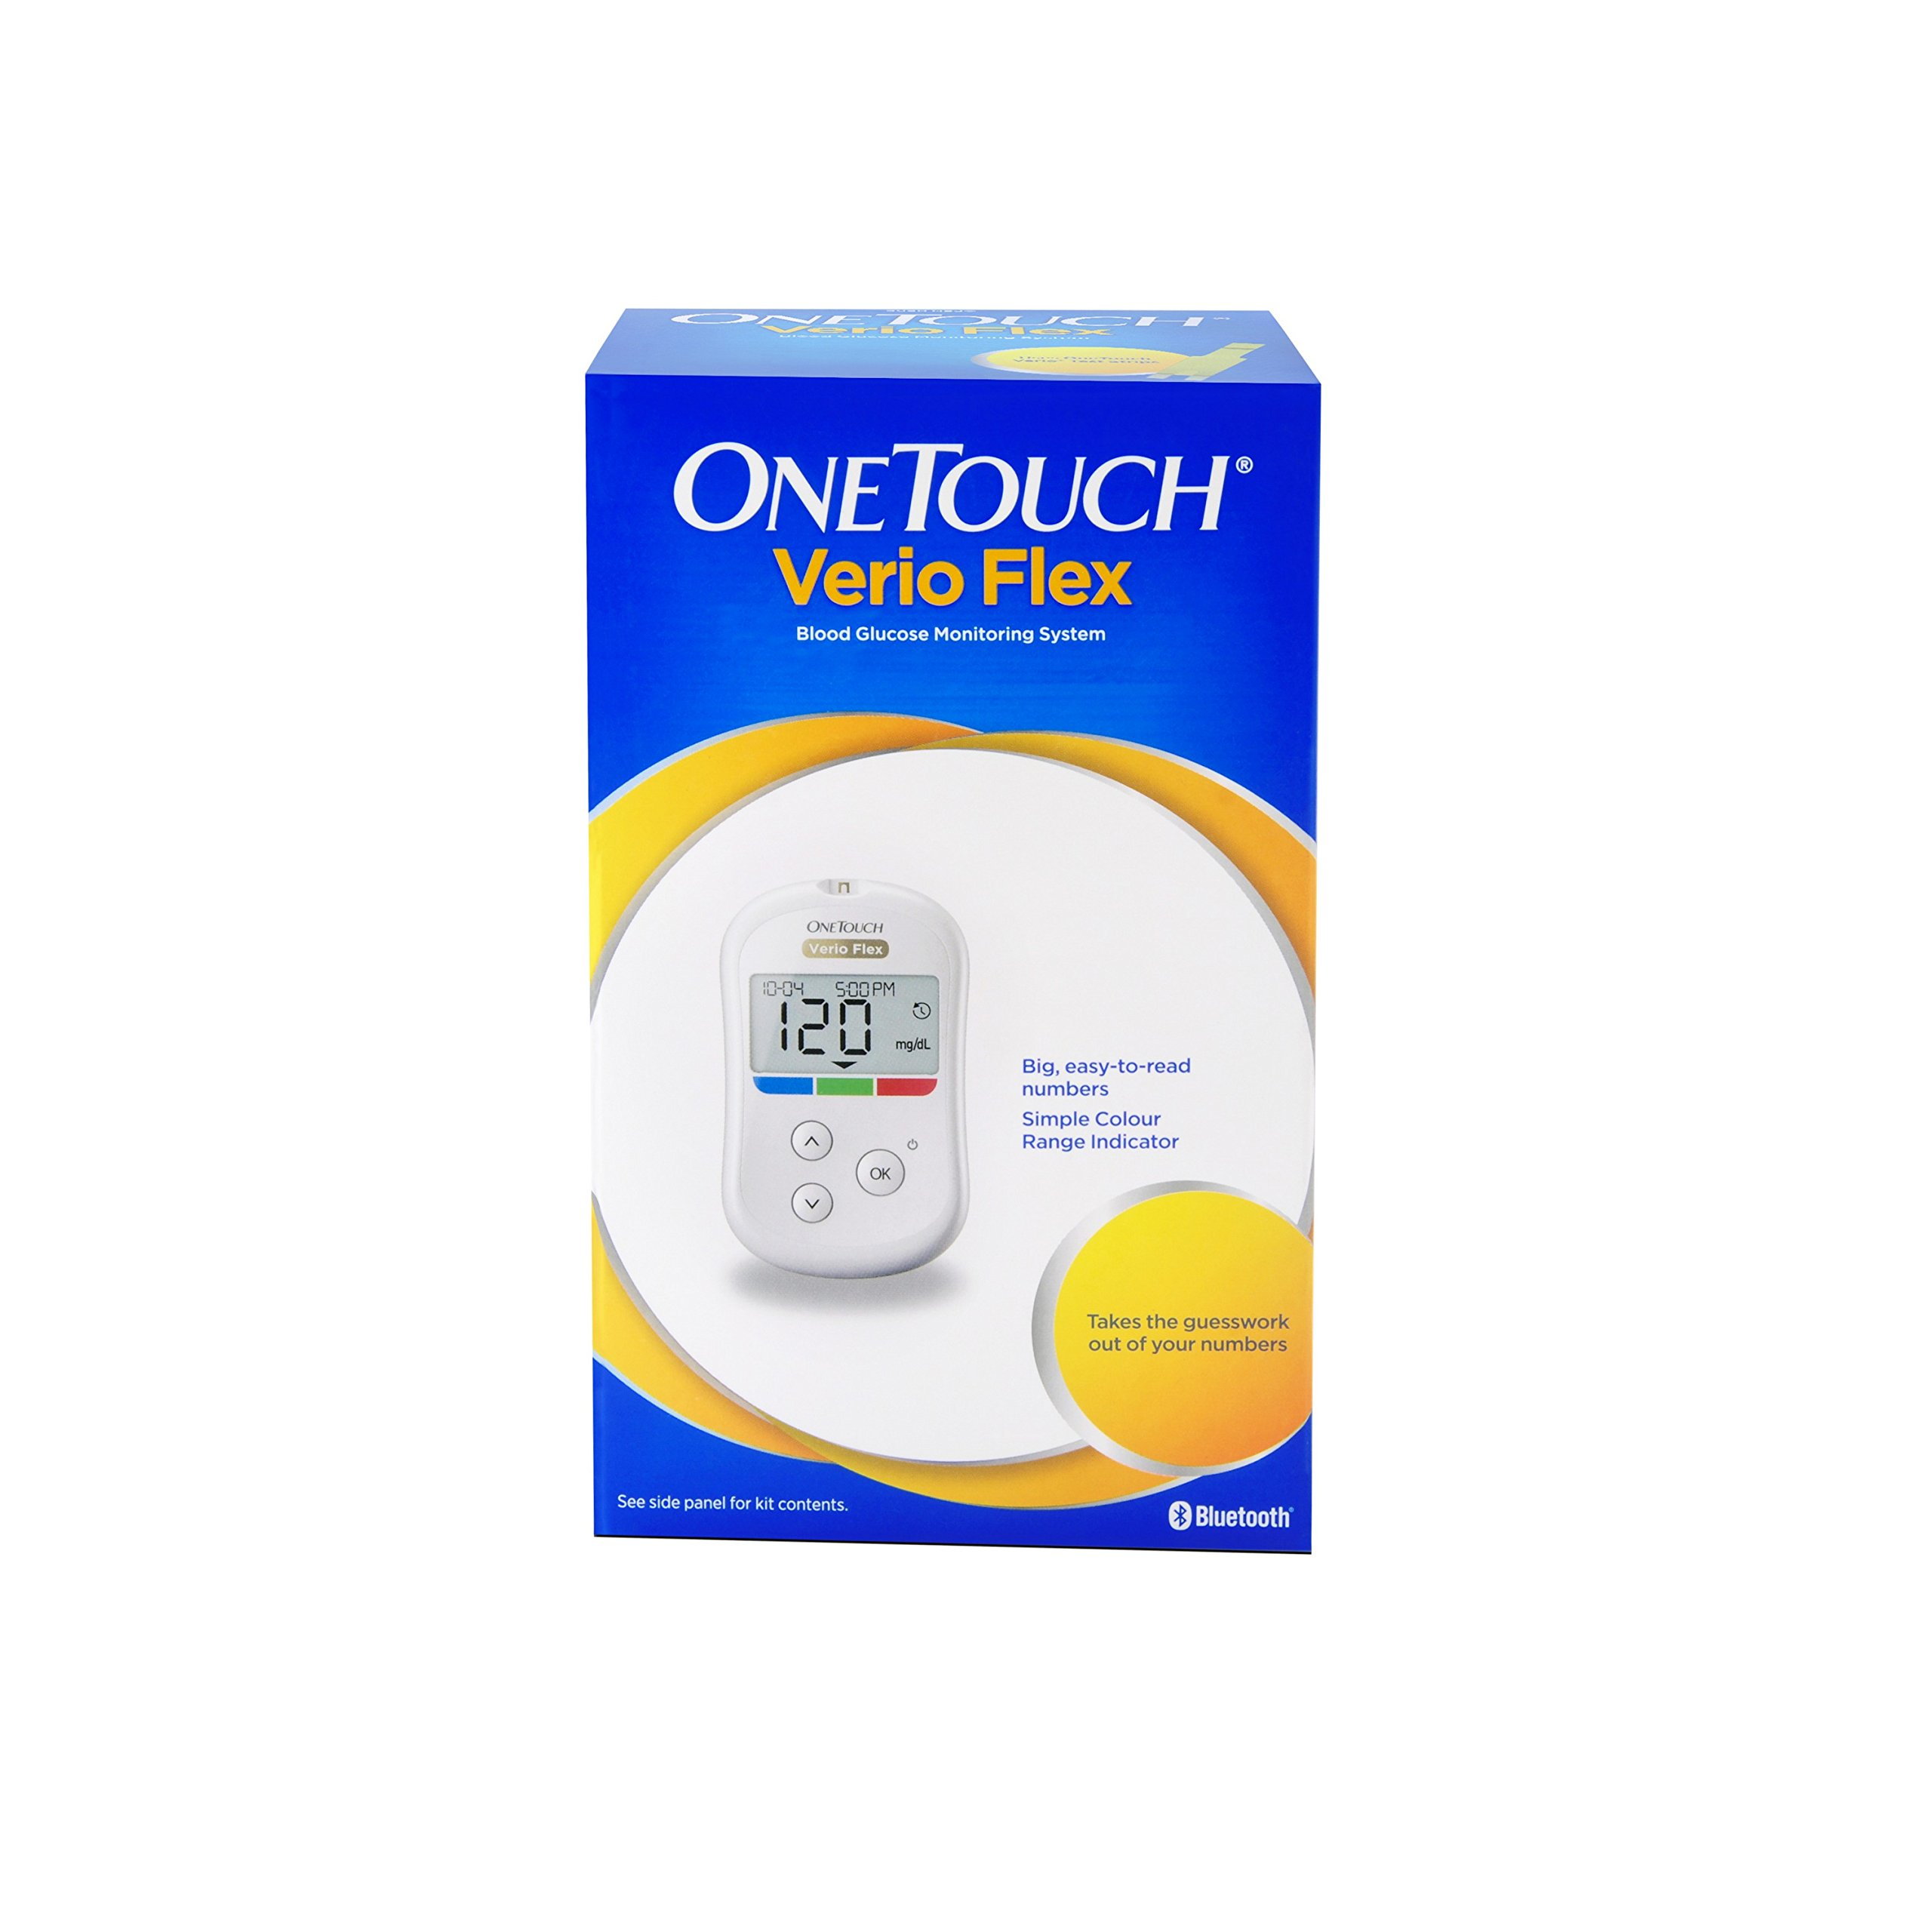 Lifescan OneTouch Verio Flex blood Glucose Monitoring System with 10 strips by OneTouch Verio Flex